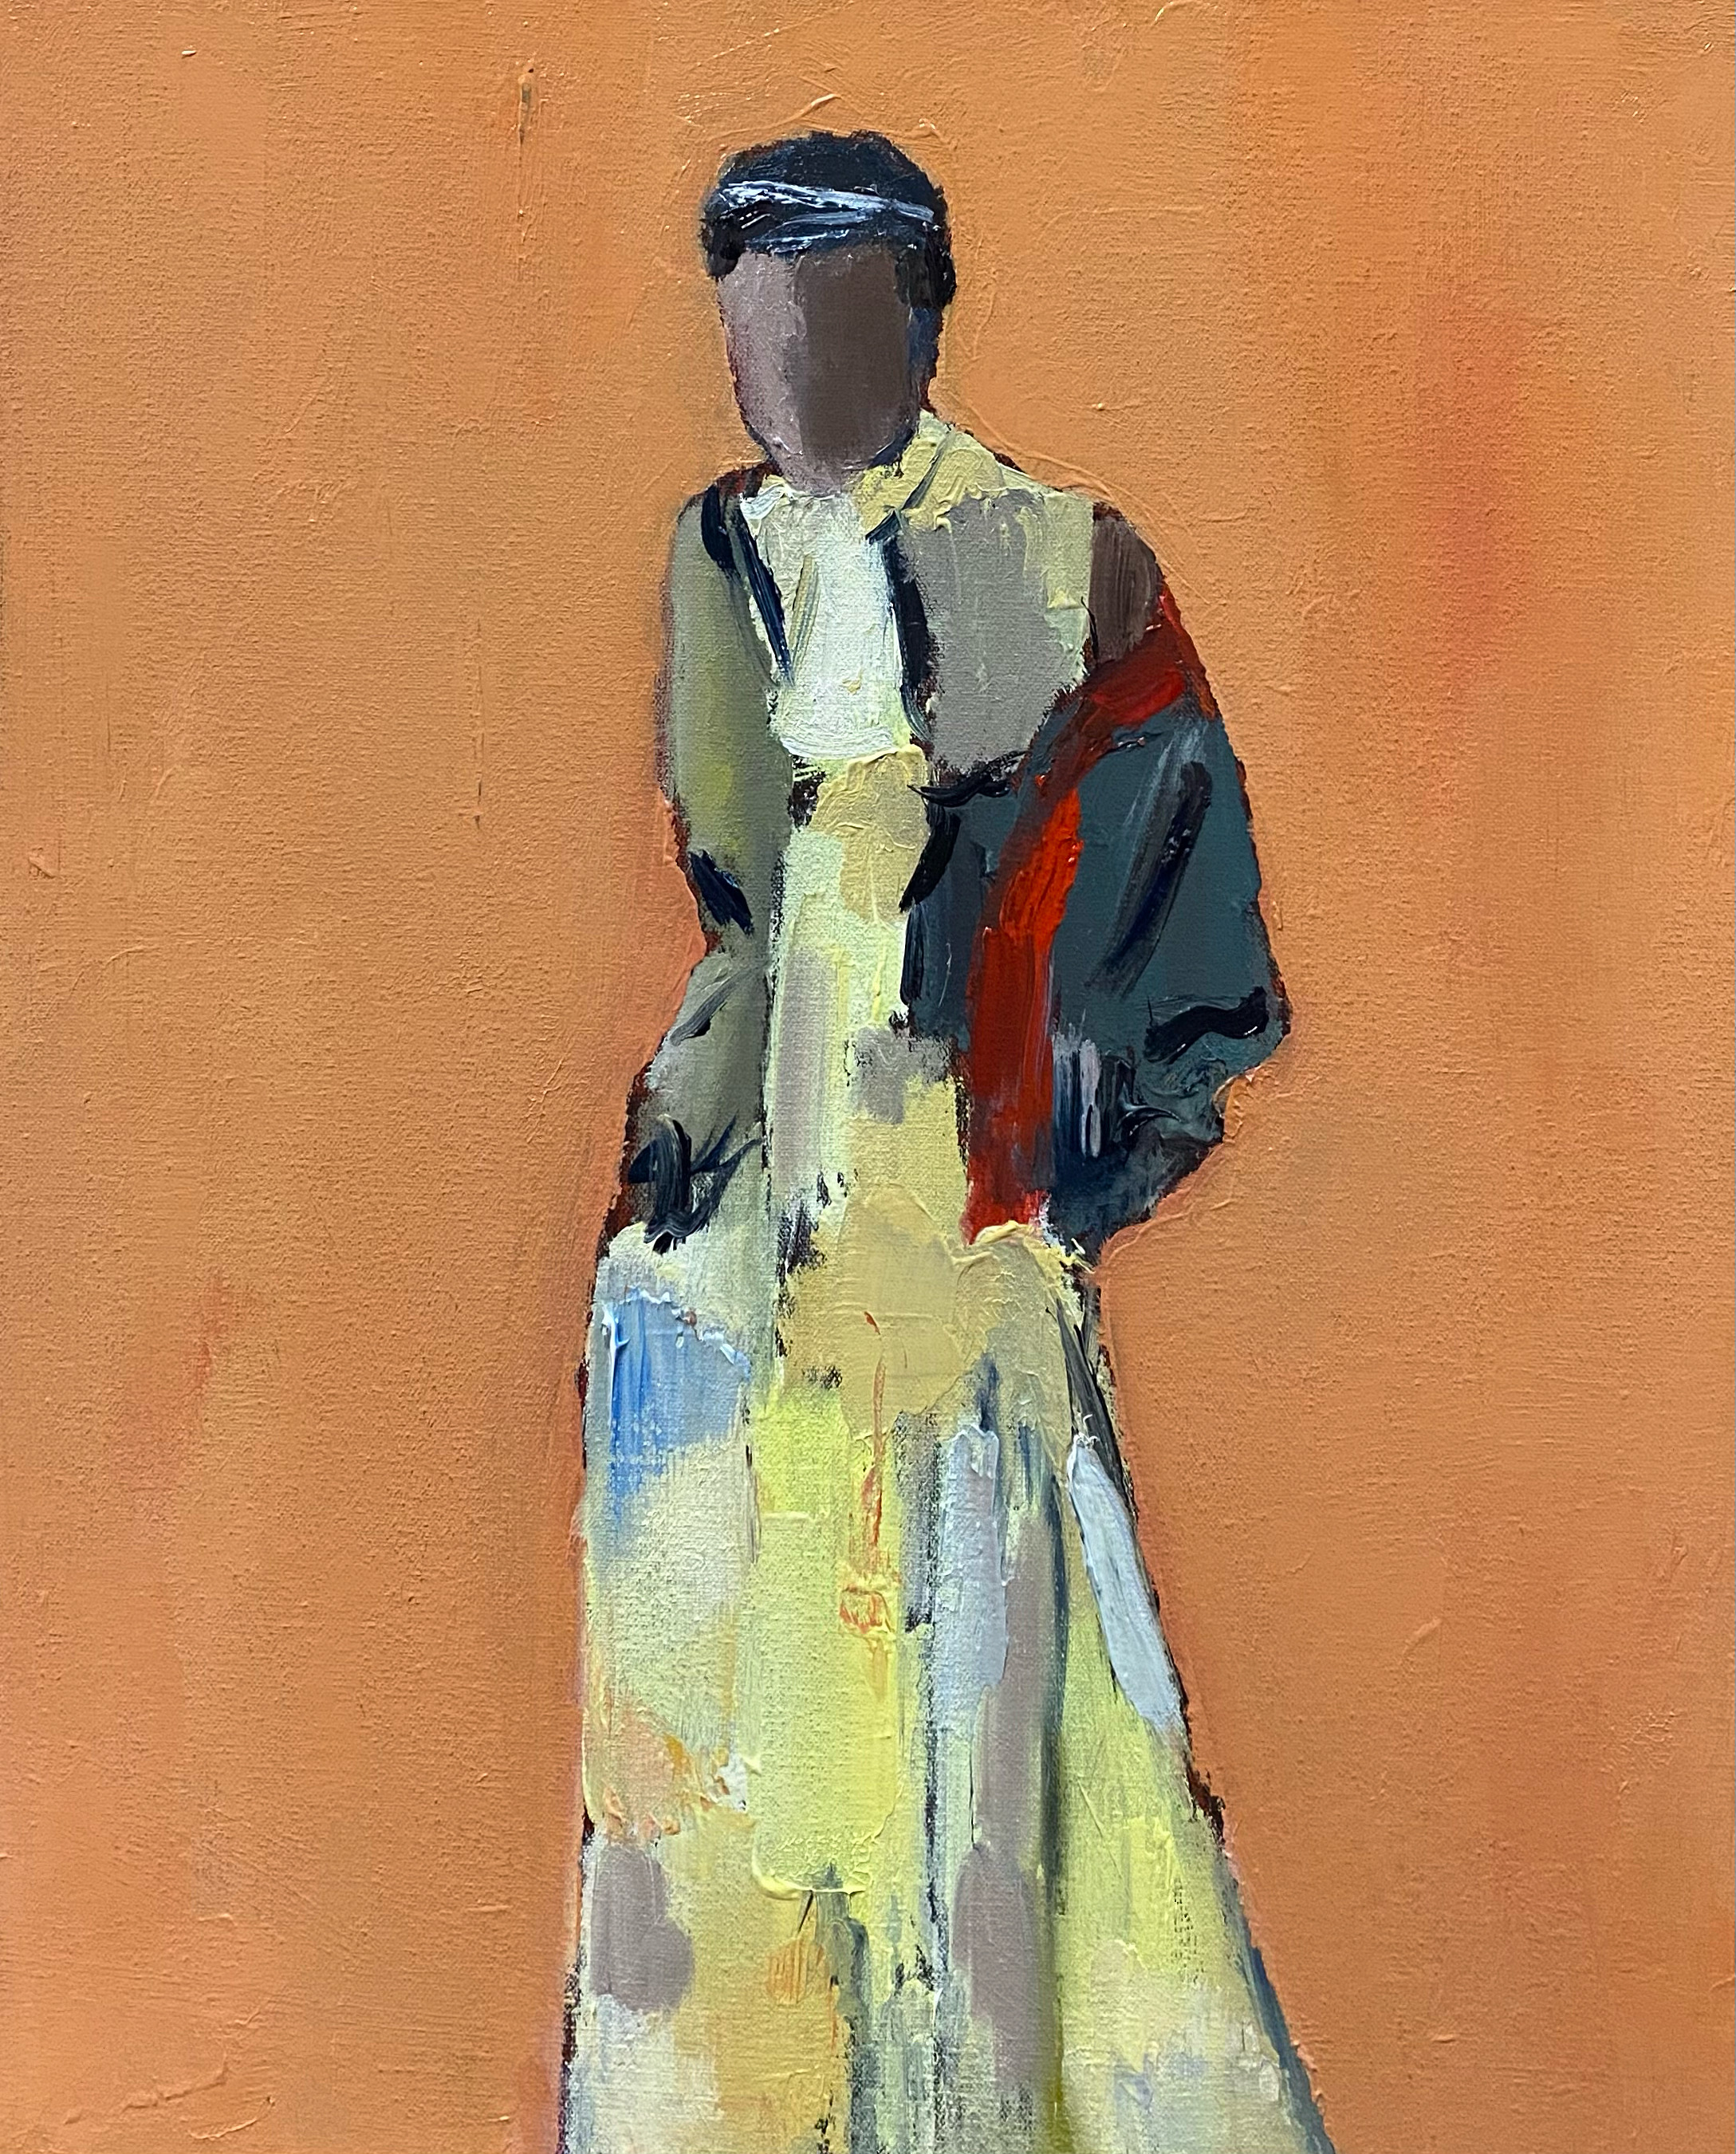 Yellow Dress 20x16 o/c